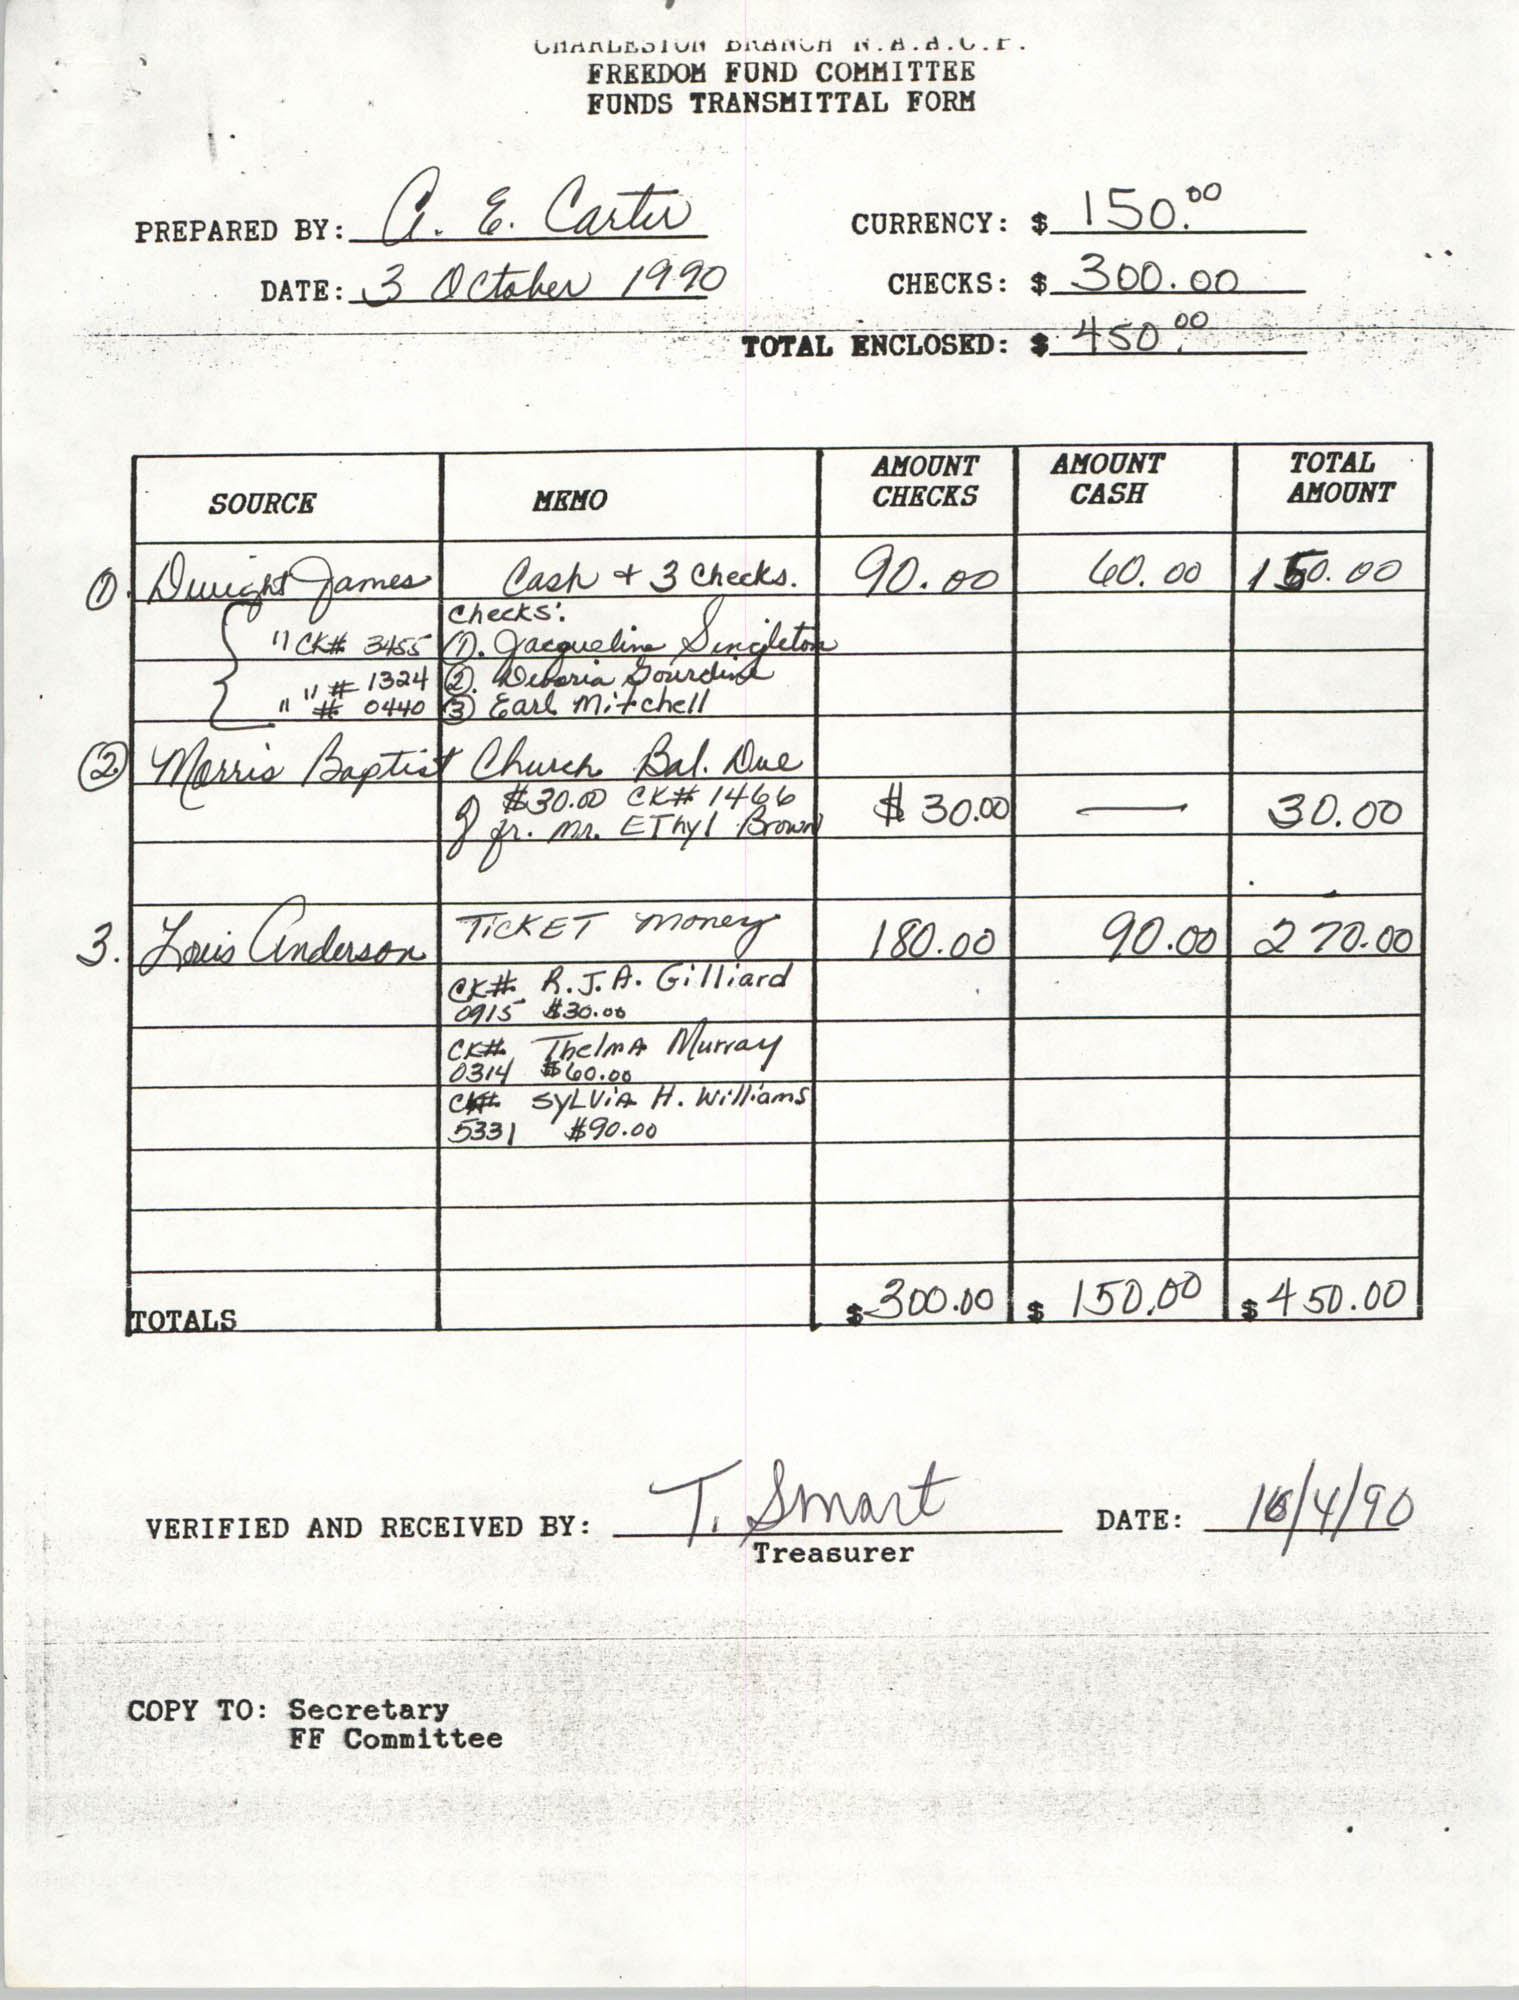 Charleston Branch of the NAACP, Funds Transmittal Forms, October 1990, Page 17